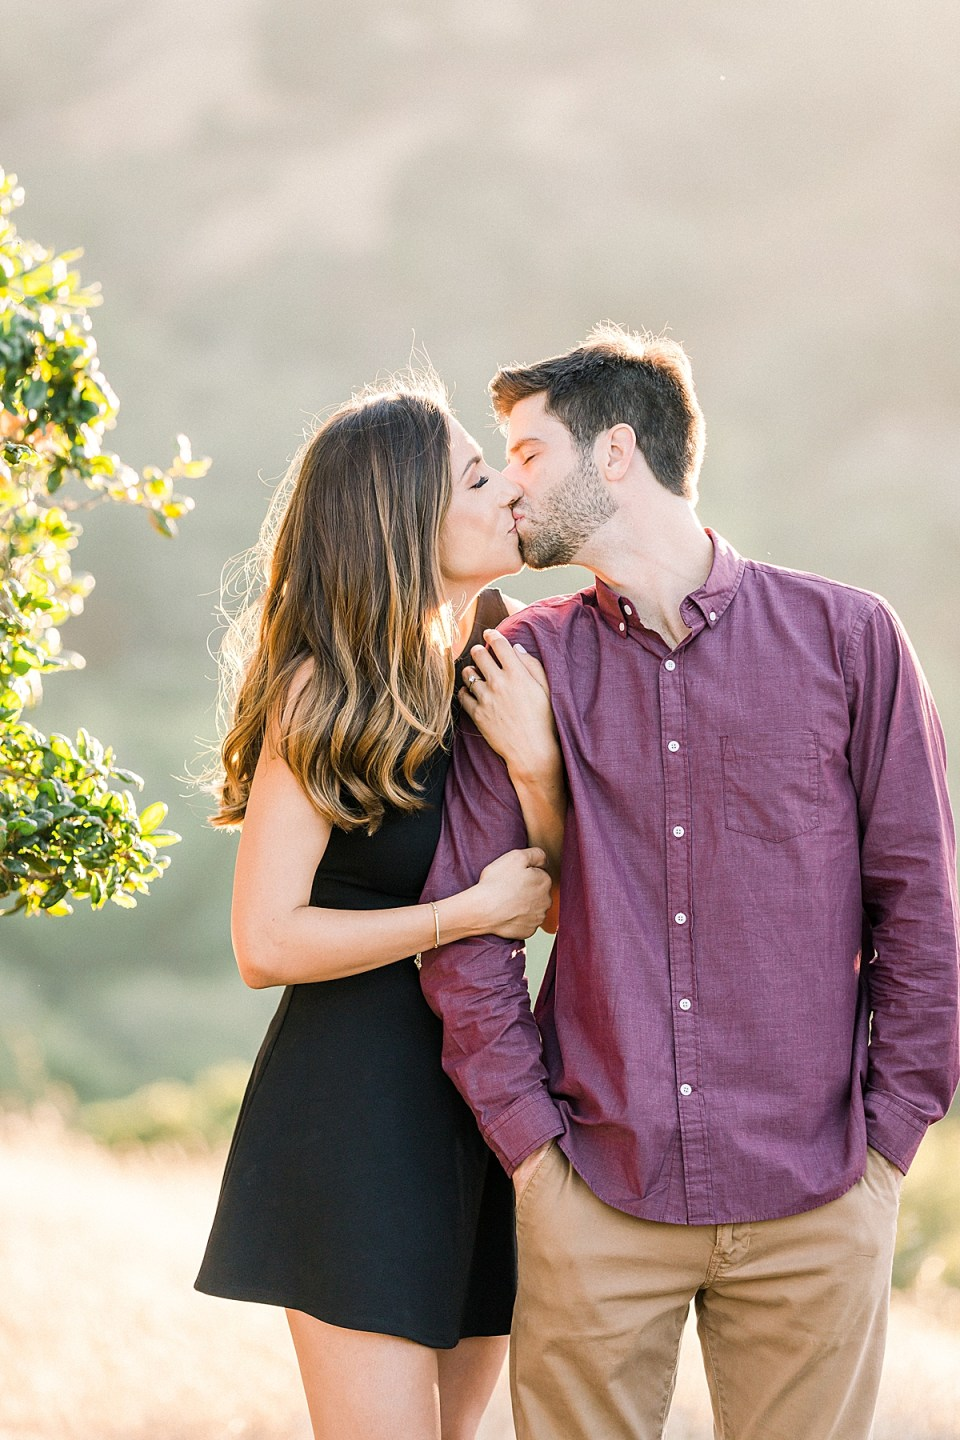 The couple sharing a kiss during their San Luis Obispo Bishop's Peak engagement session